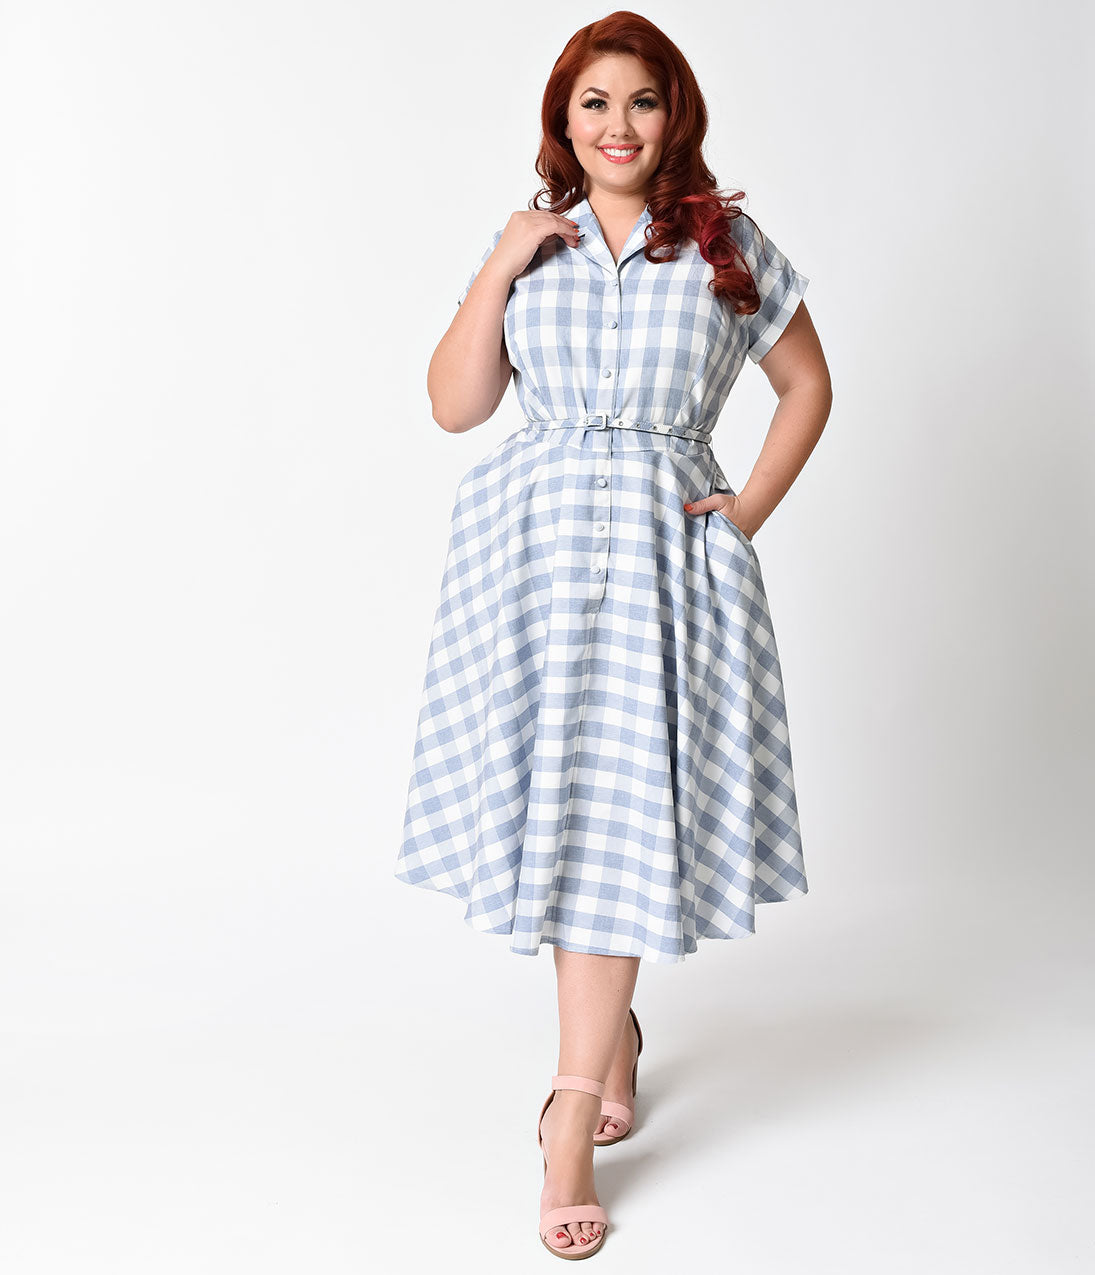 Modest, Mature, Mrs. Vintage Dresses – 20s, 30s, 40s, 50s, 60s Unique Vintage Plus Size 1950S Style Light Blue  White Gingham Alexis Short Sleeve Swing Dress $98.00 AT vintagedancer.com